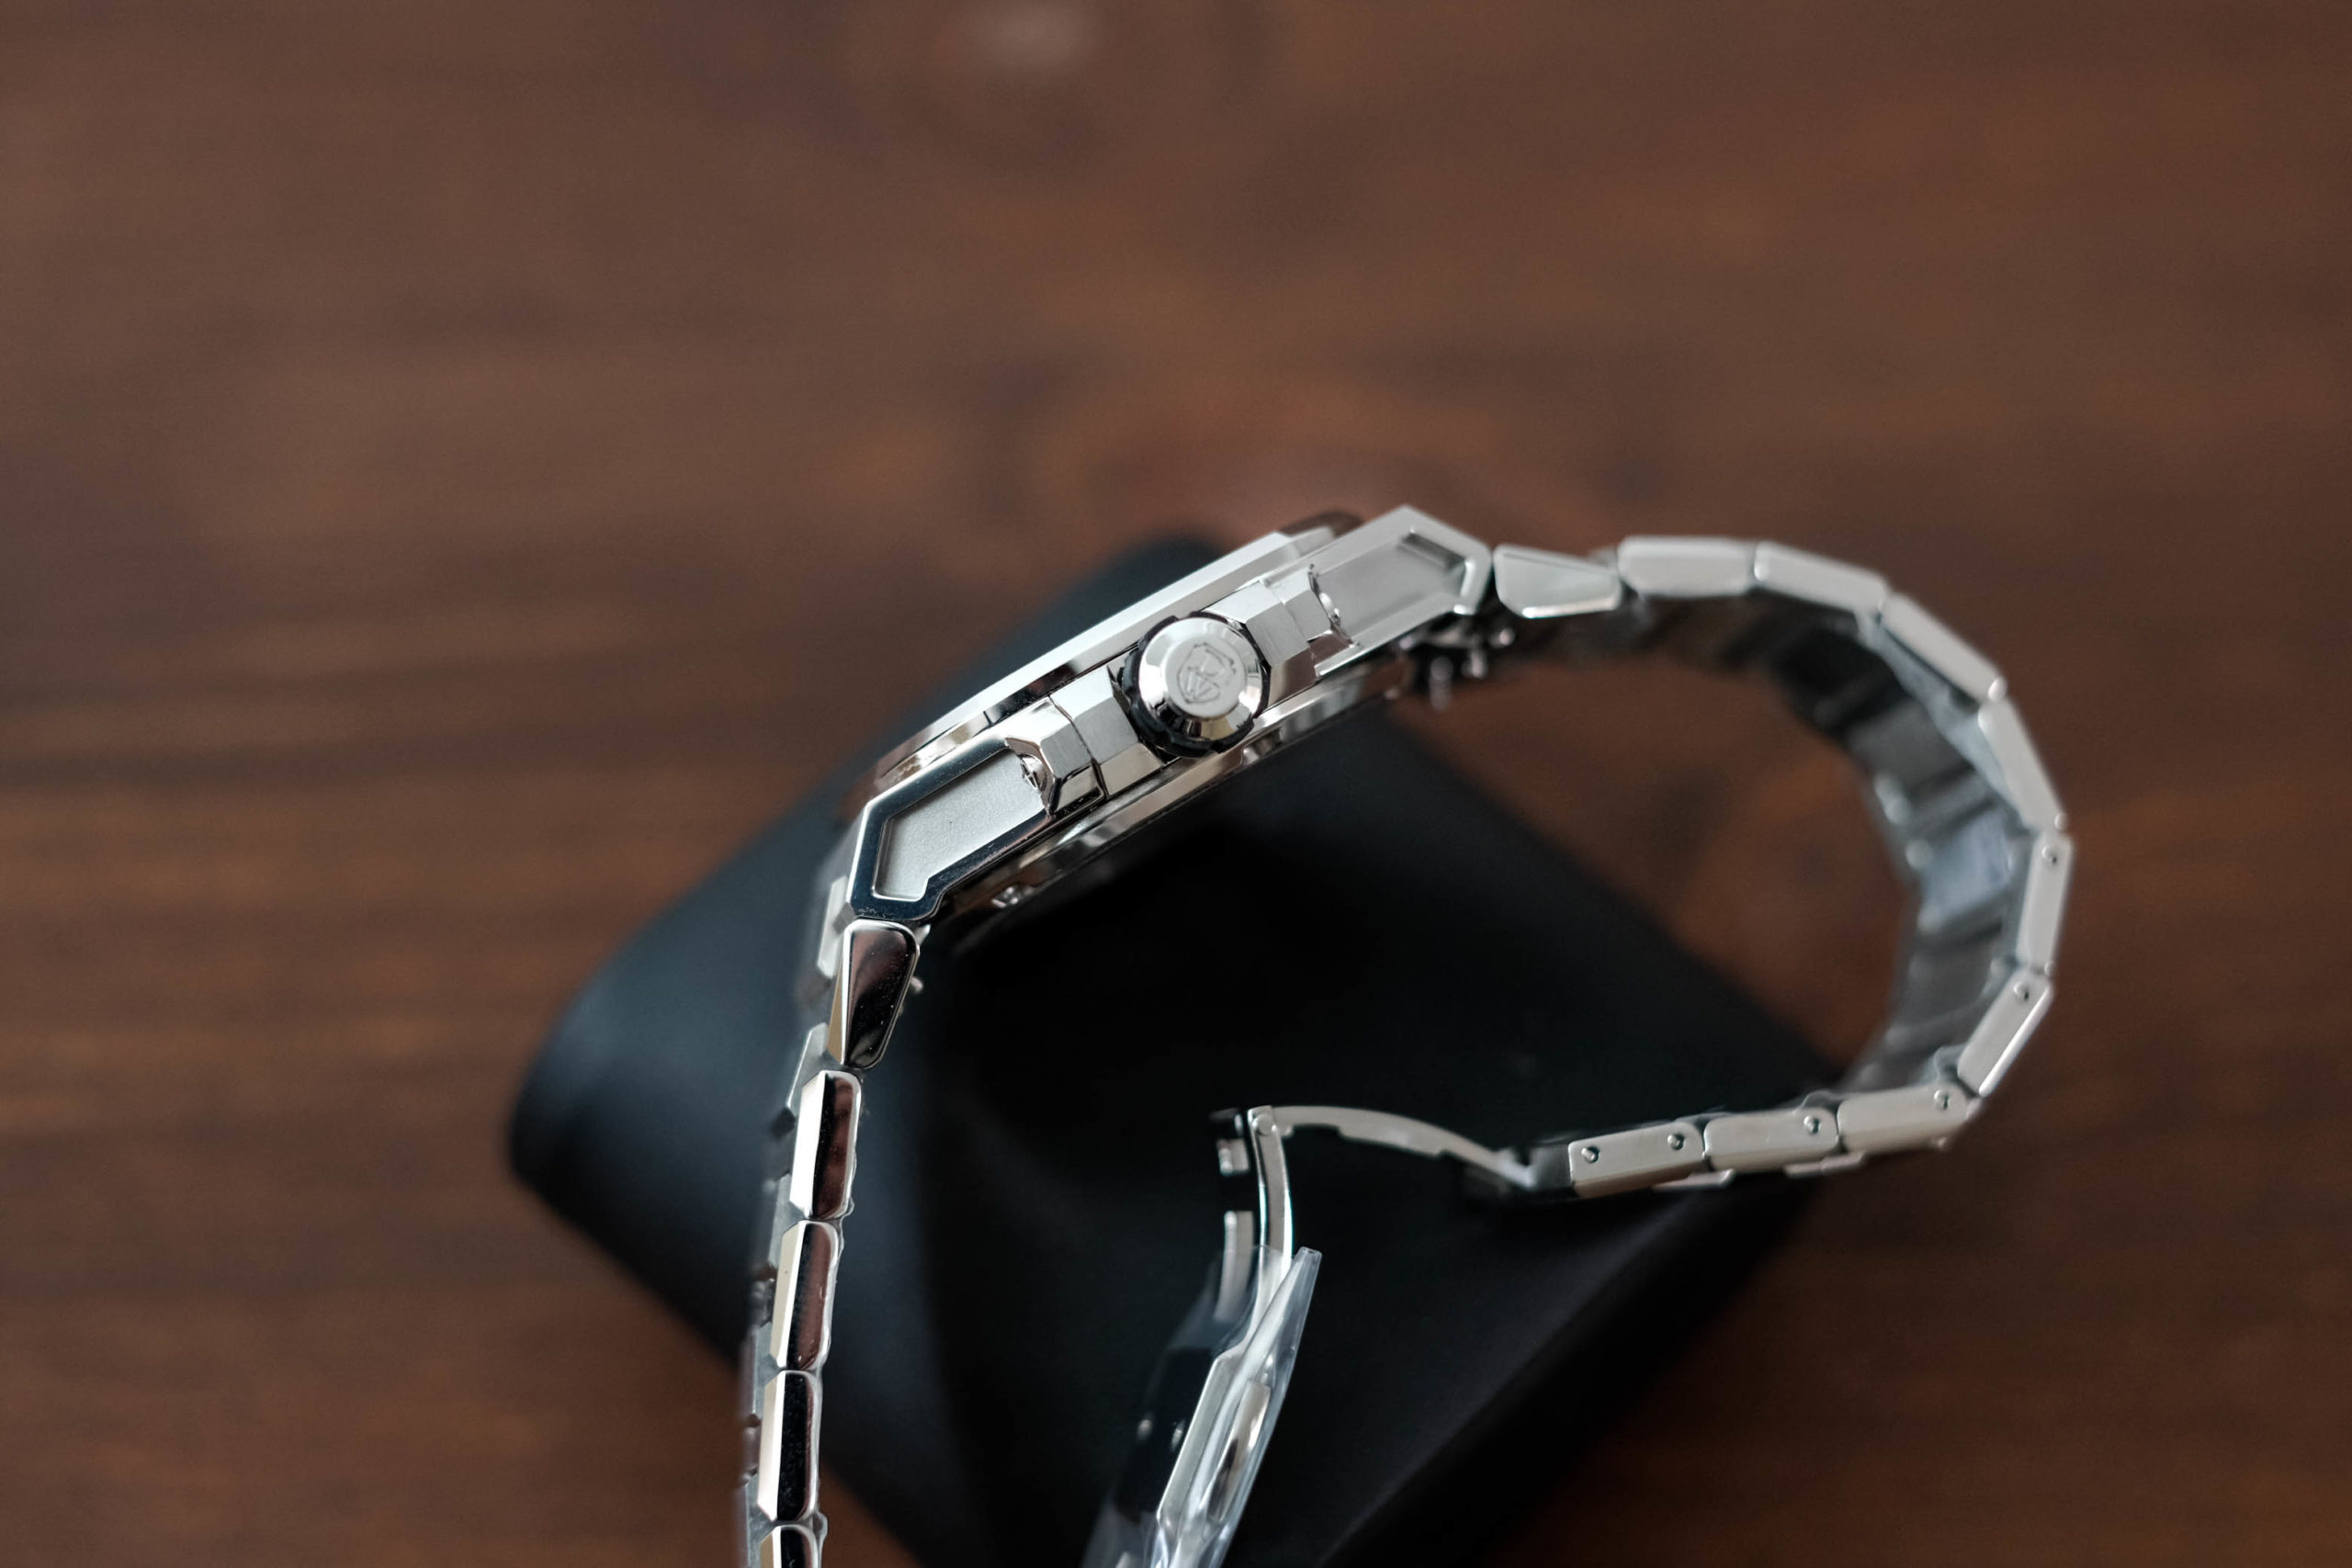 Side view of watch case